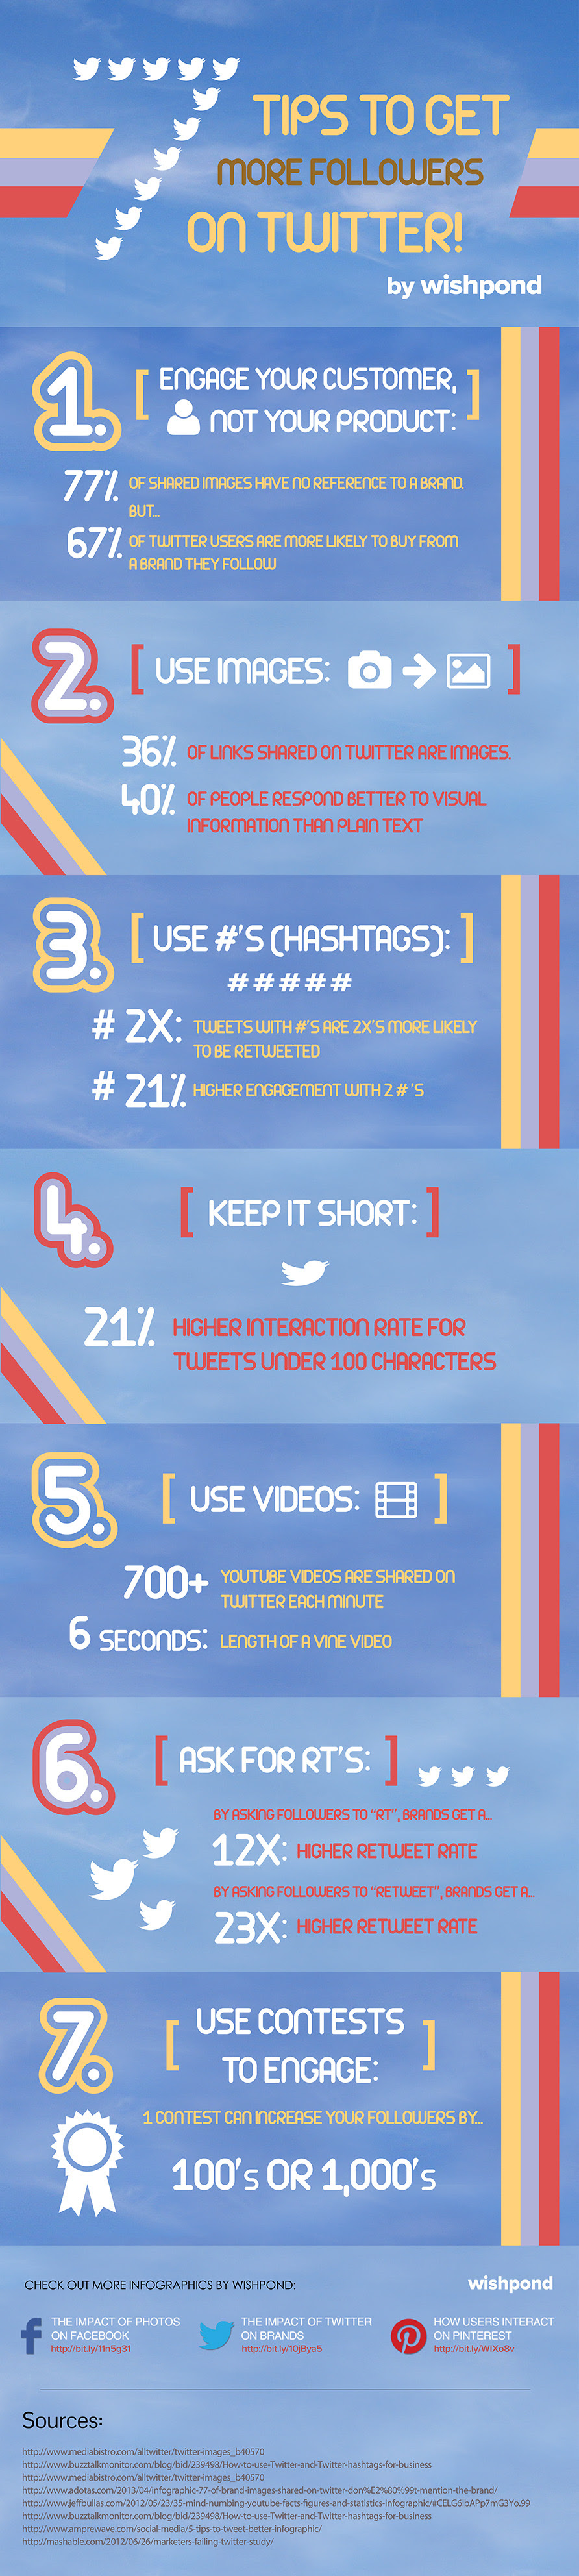 Top 7 Tips to Get More Followers on Twitter infographic